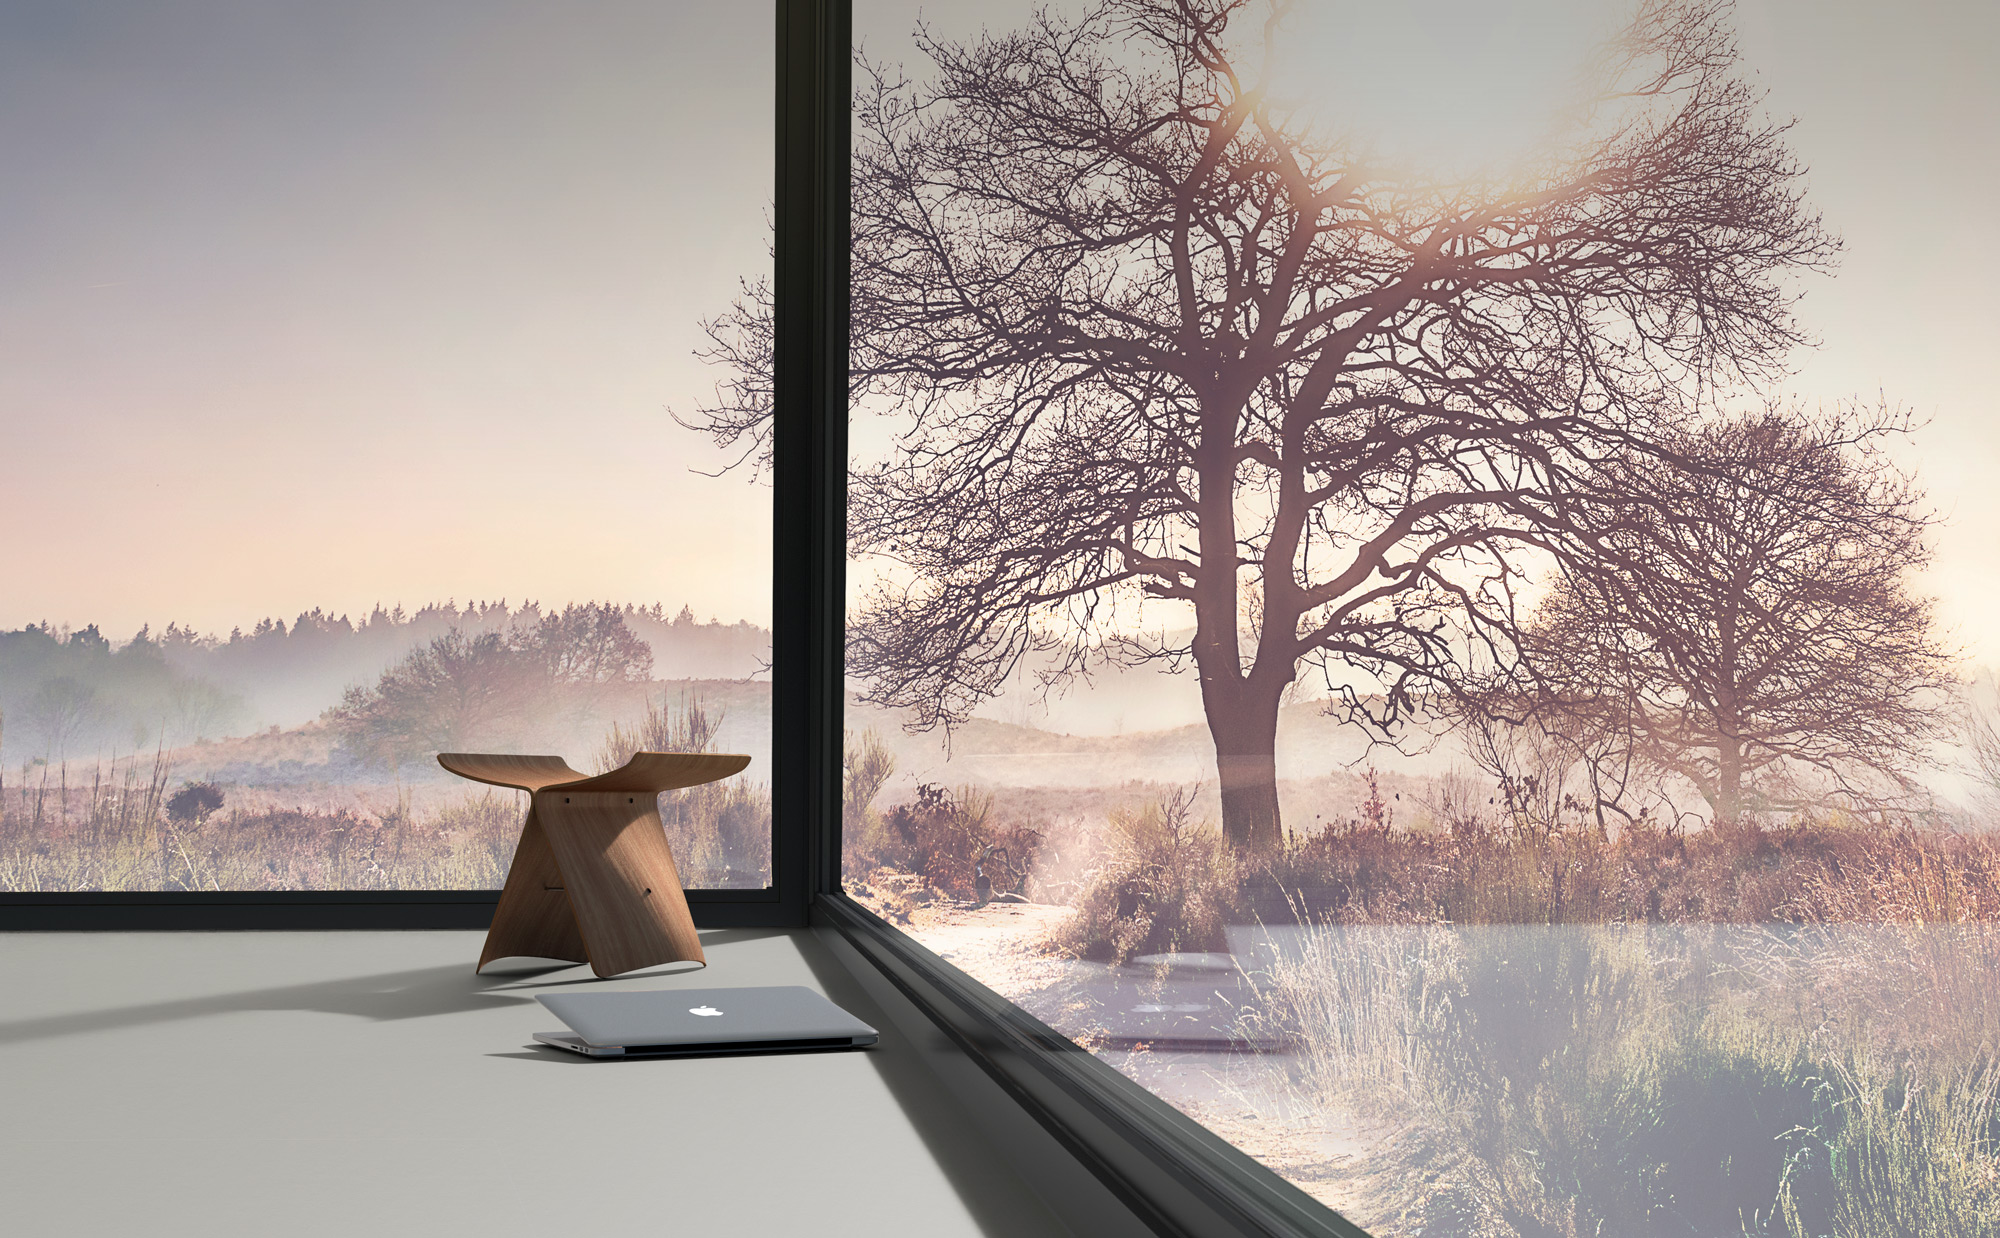 Vitra stool in virtual room created in CGI for Forbo flooring